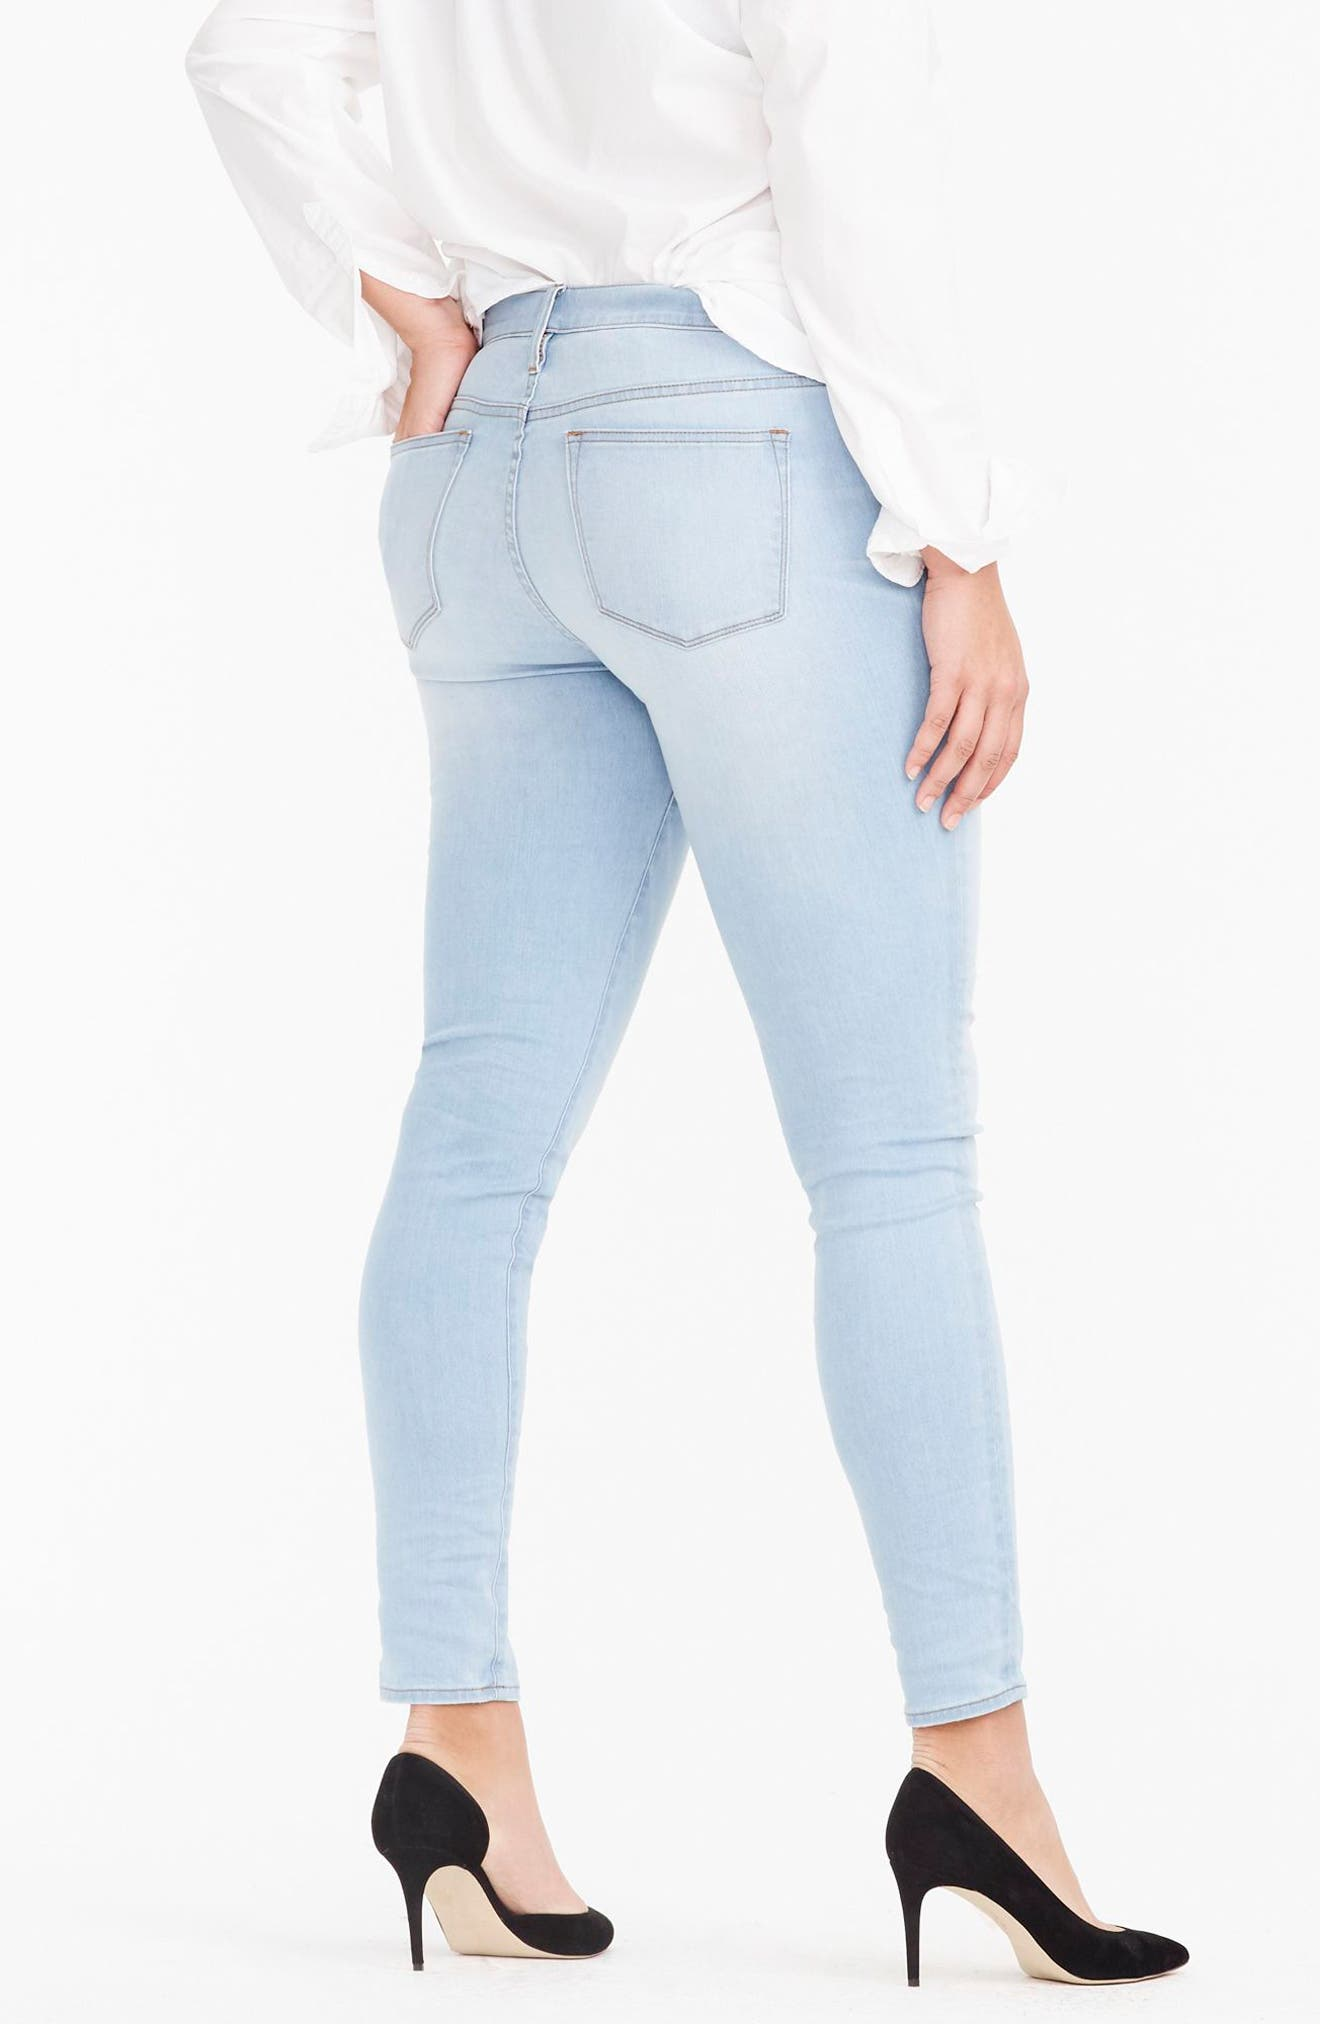 J.Crew Toothpick Jeans,                         Main,                         color, Charles Field Wash